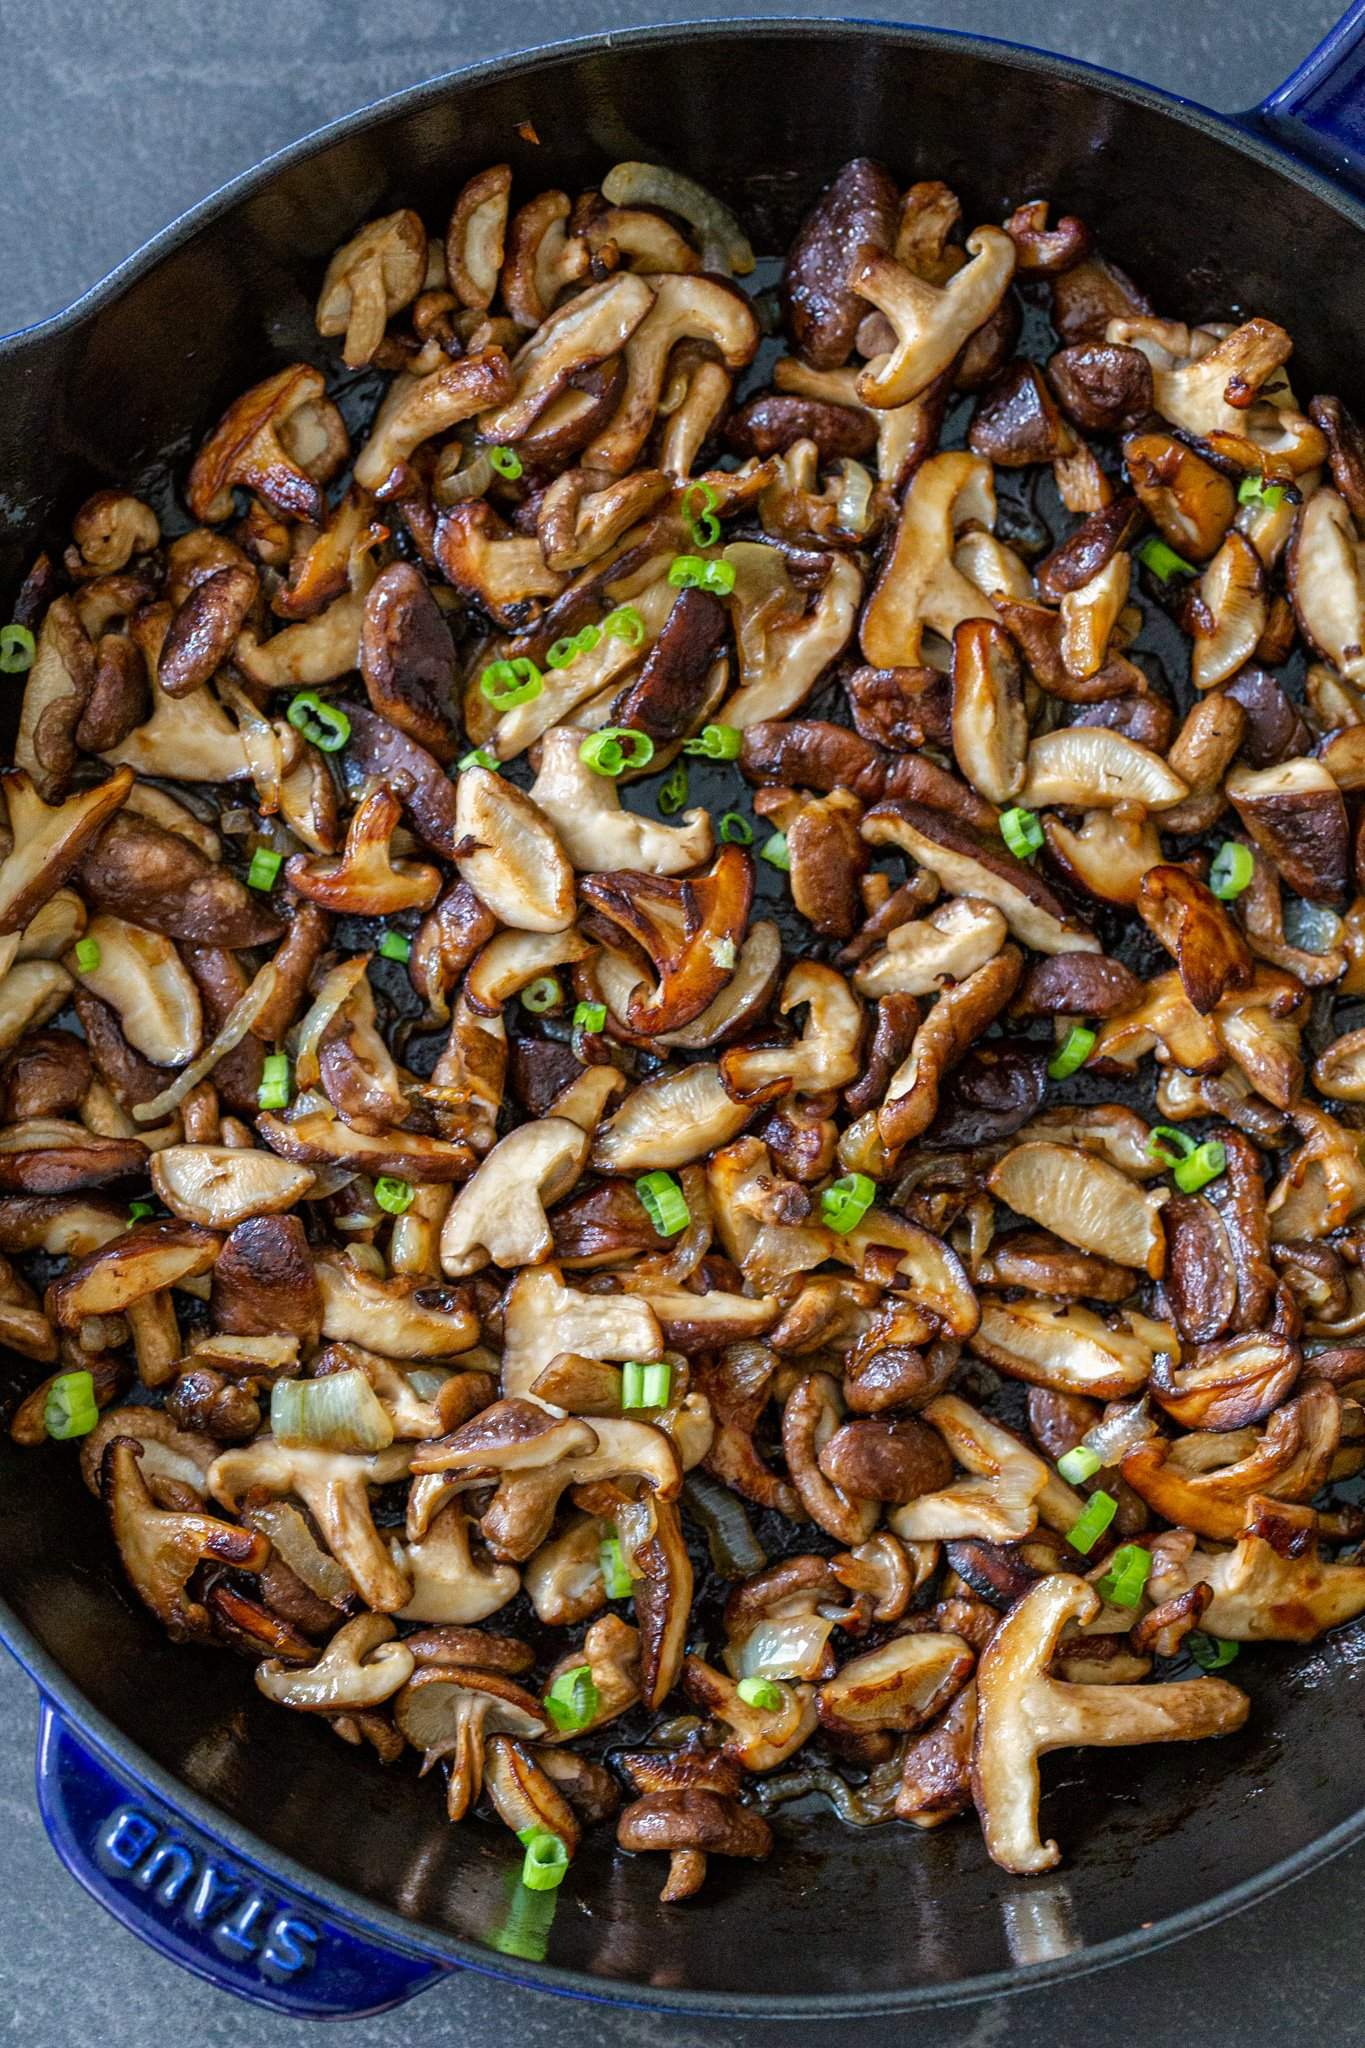 fried shitake mushrooms in a pan